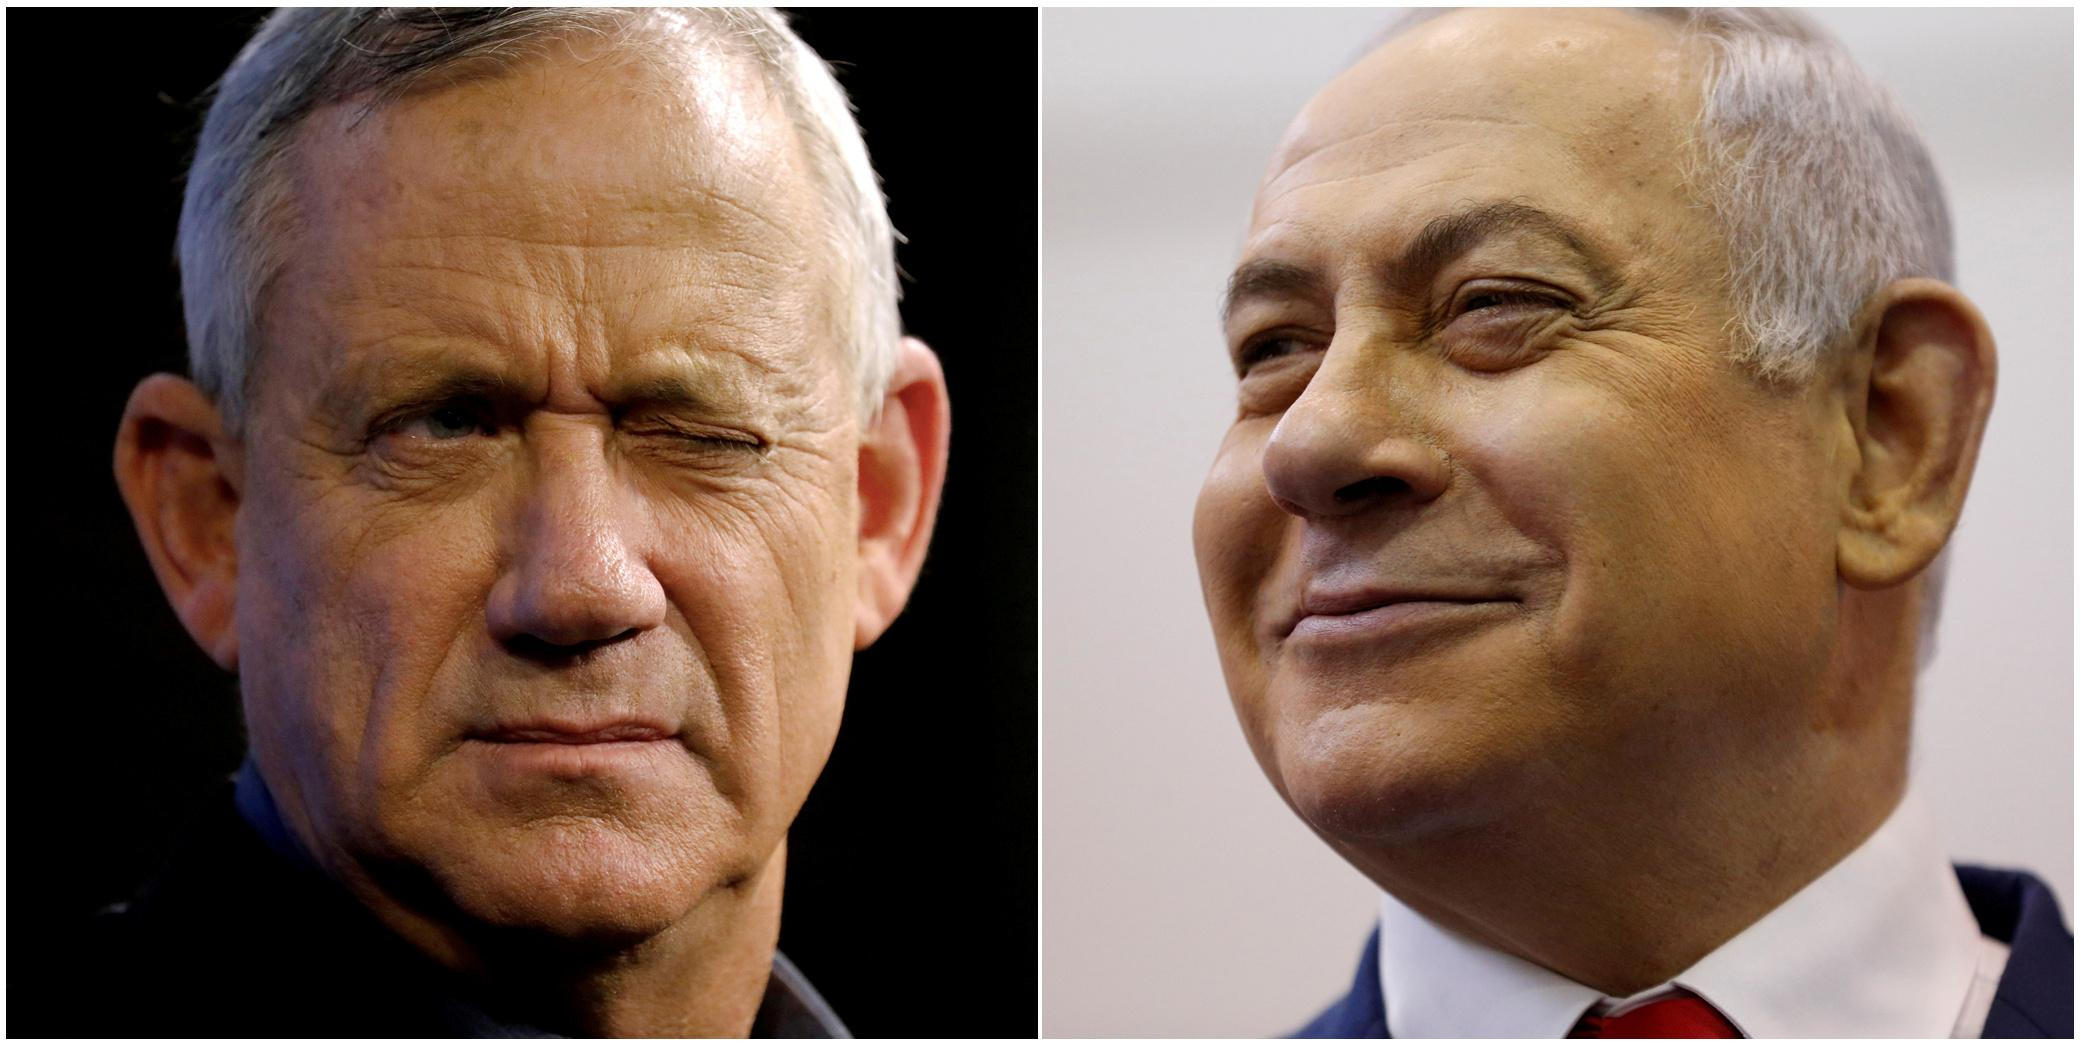 With Netanyahu's fate in question, Israel heads to new election